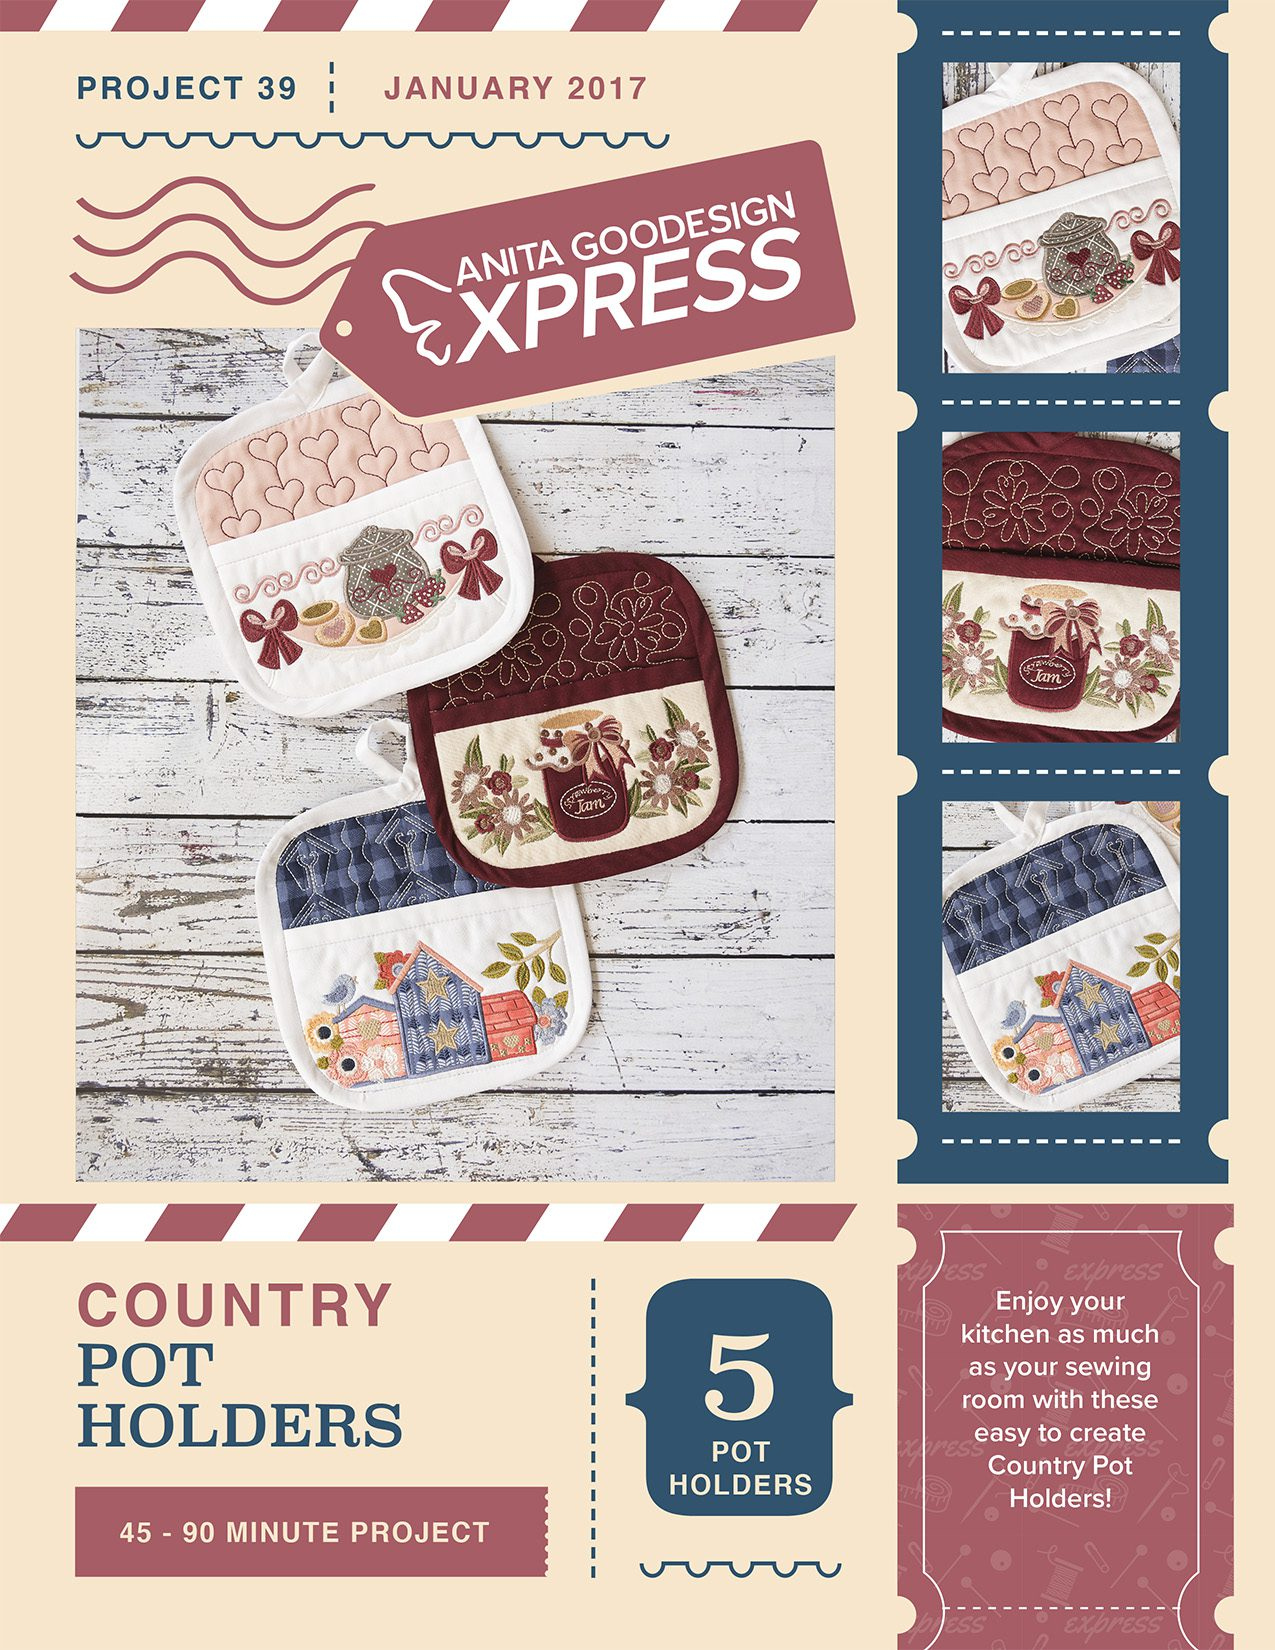 Country Pot Holders